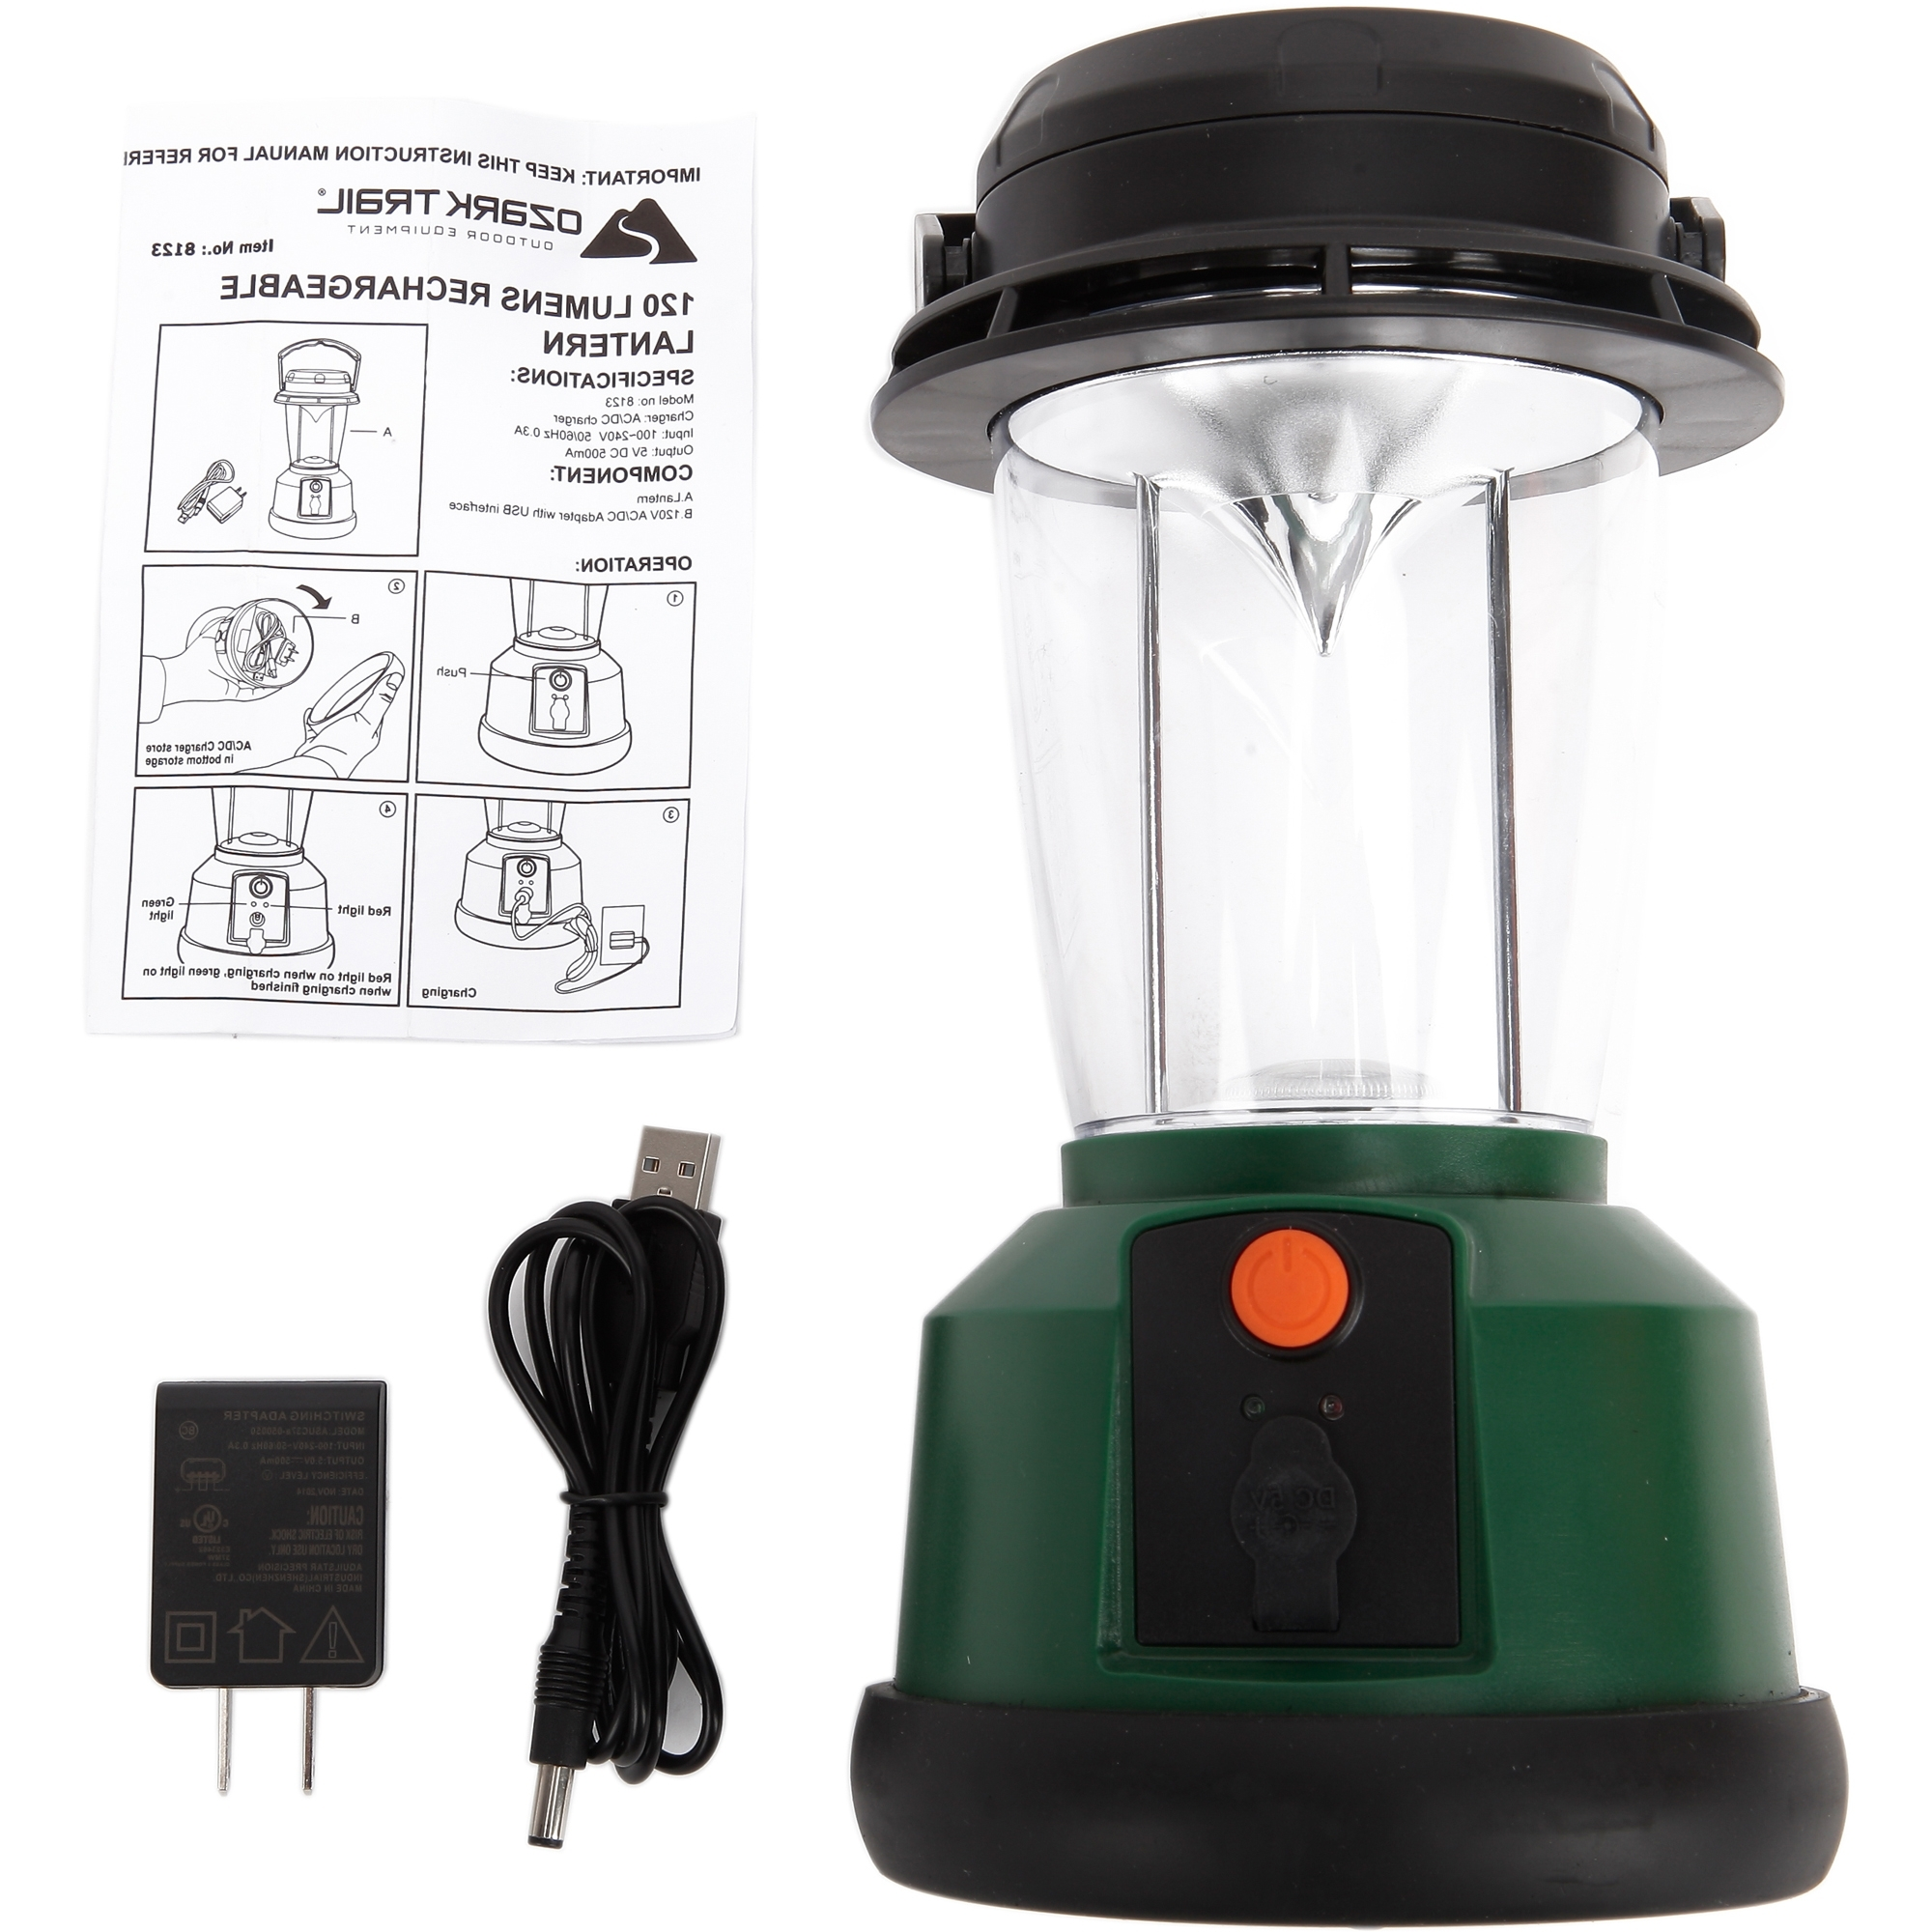 Outdoor Rechargeable Lanterns Pertaining To Most Popular Led Rechargeable Lantern With 3 Mods And Usb Interface, 120 Lumens (View 12 of 20)